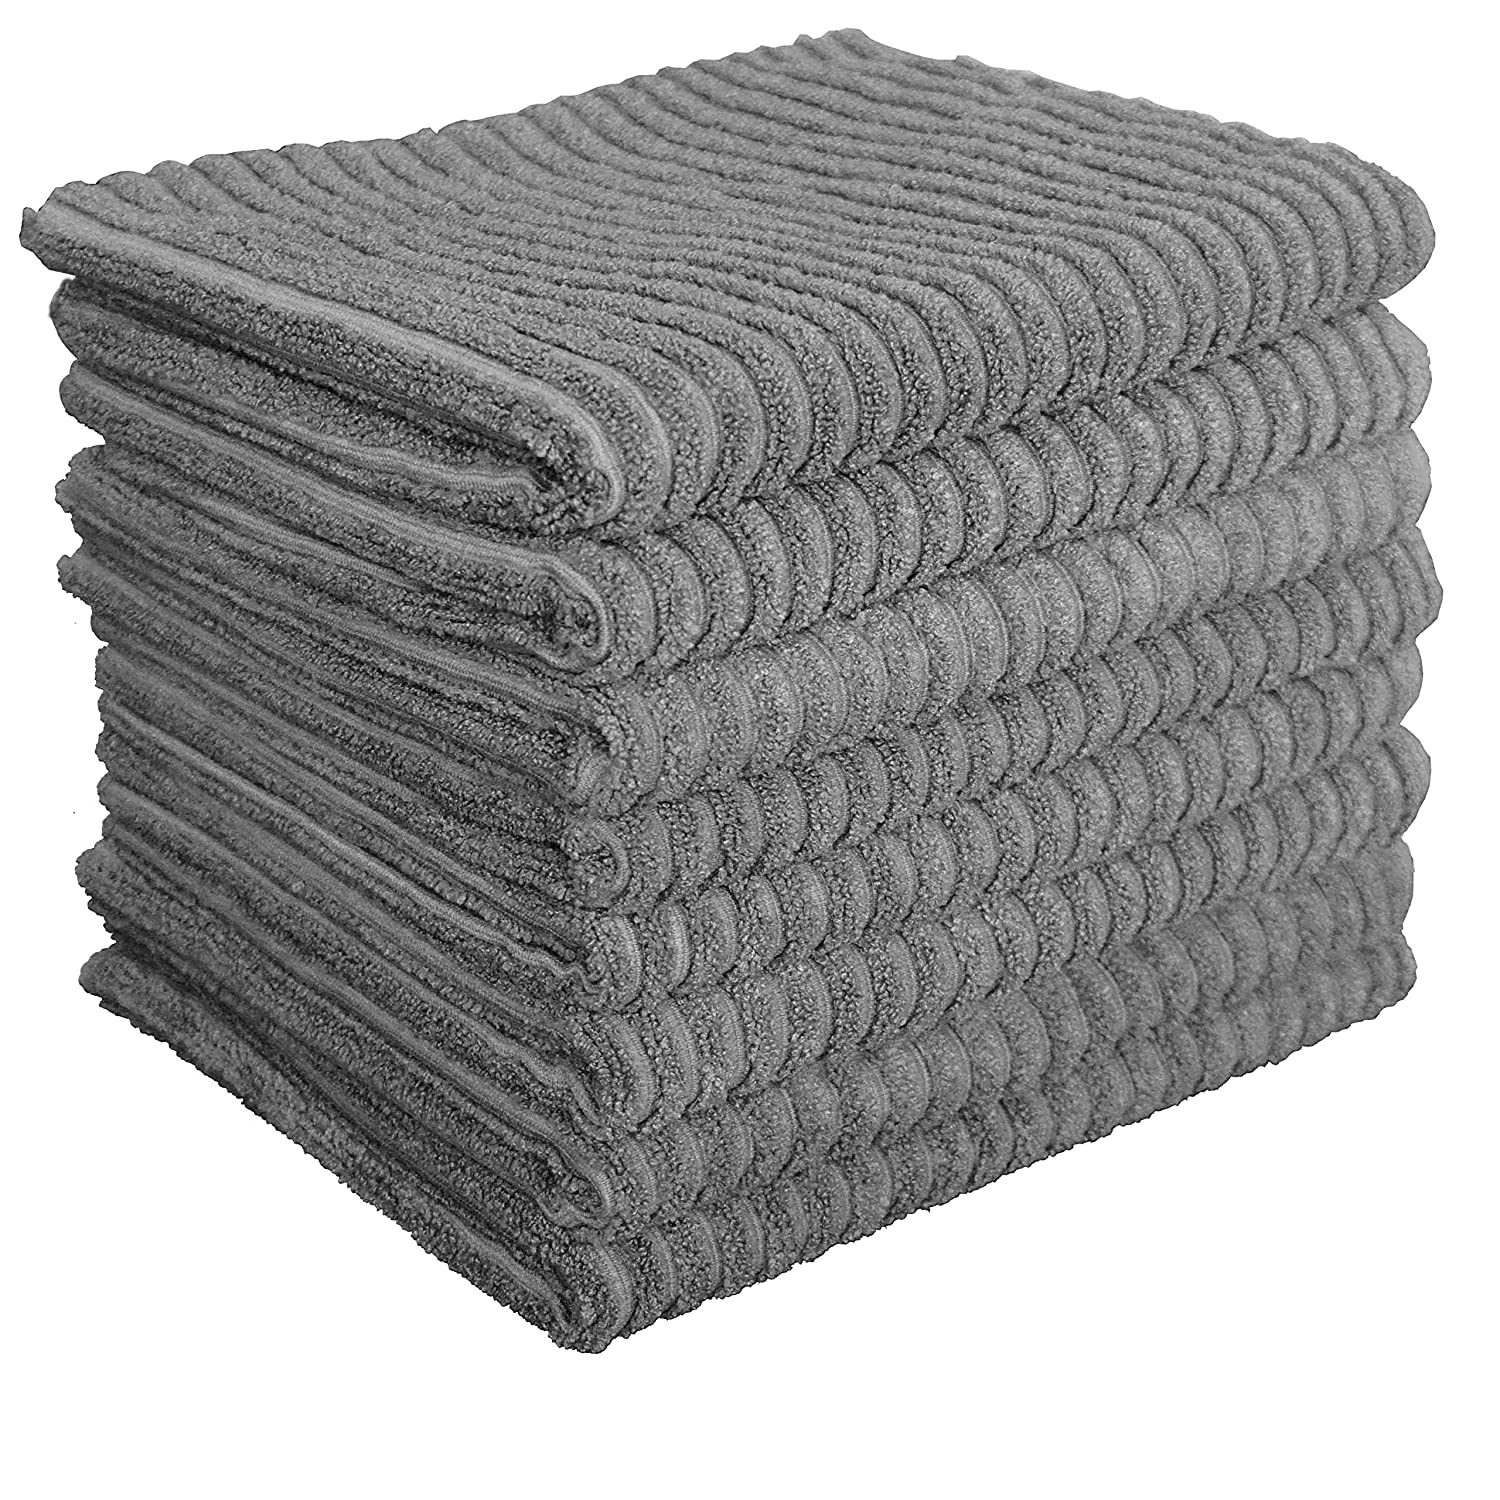 Gryeer Microfiber Kitchen Towels - Super Absorbent Dish Towels - One Side Ribbed One Side Smooth Tea Towels, 26x18 Inch, Pack of 8, Gray